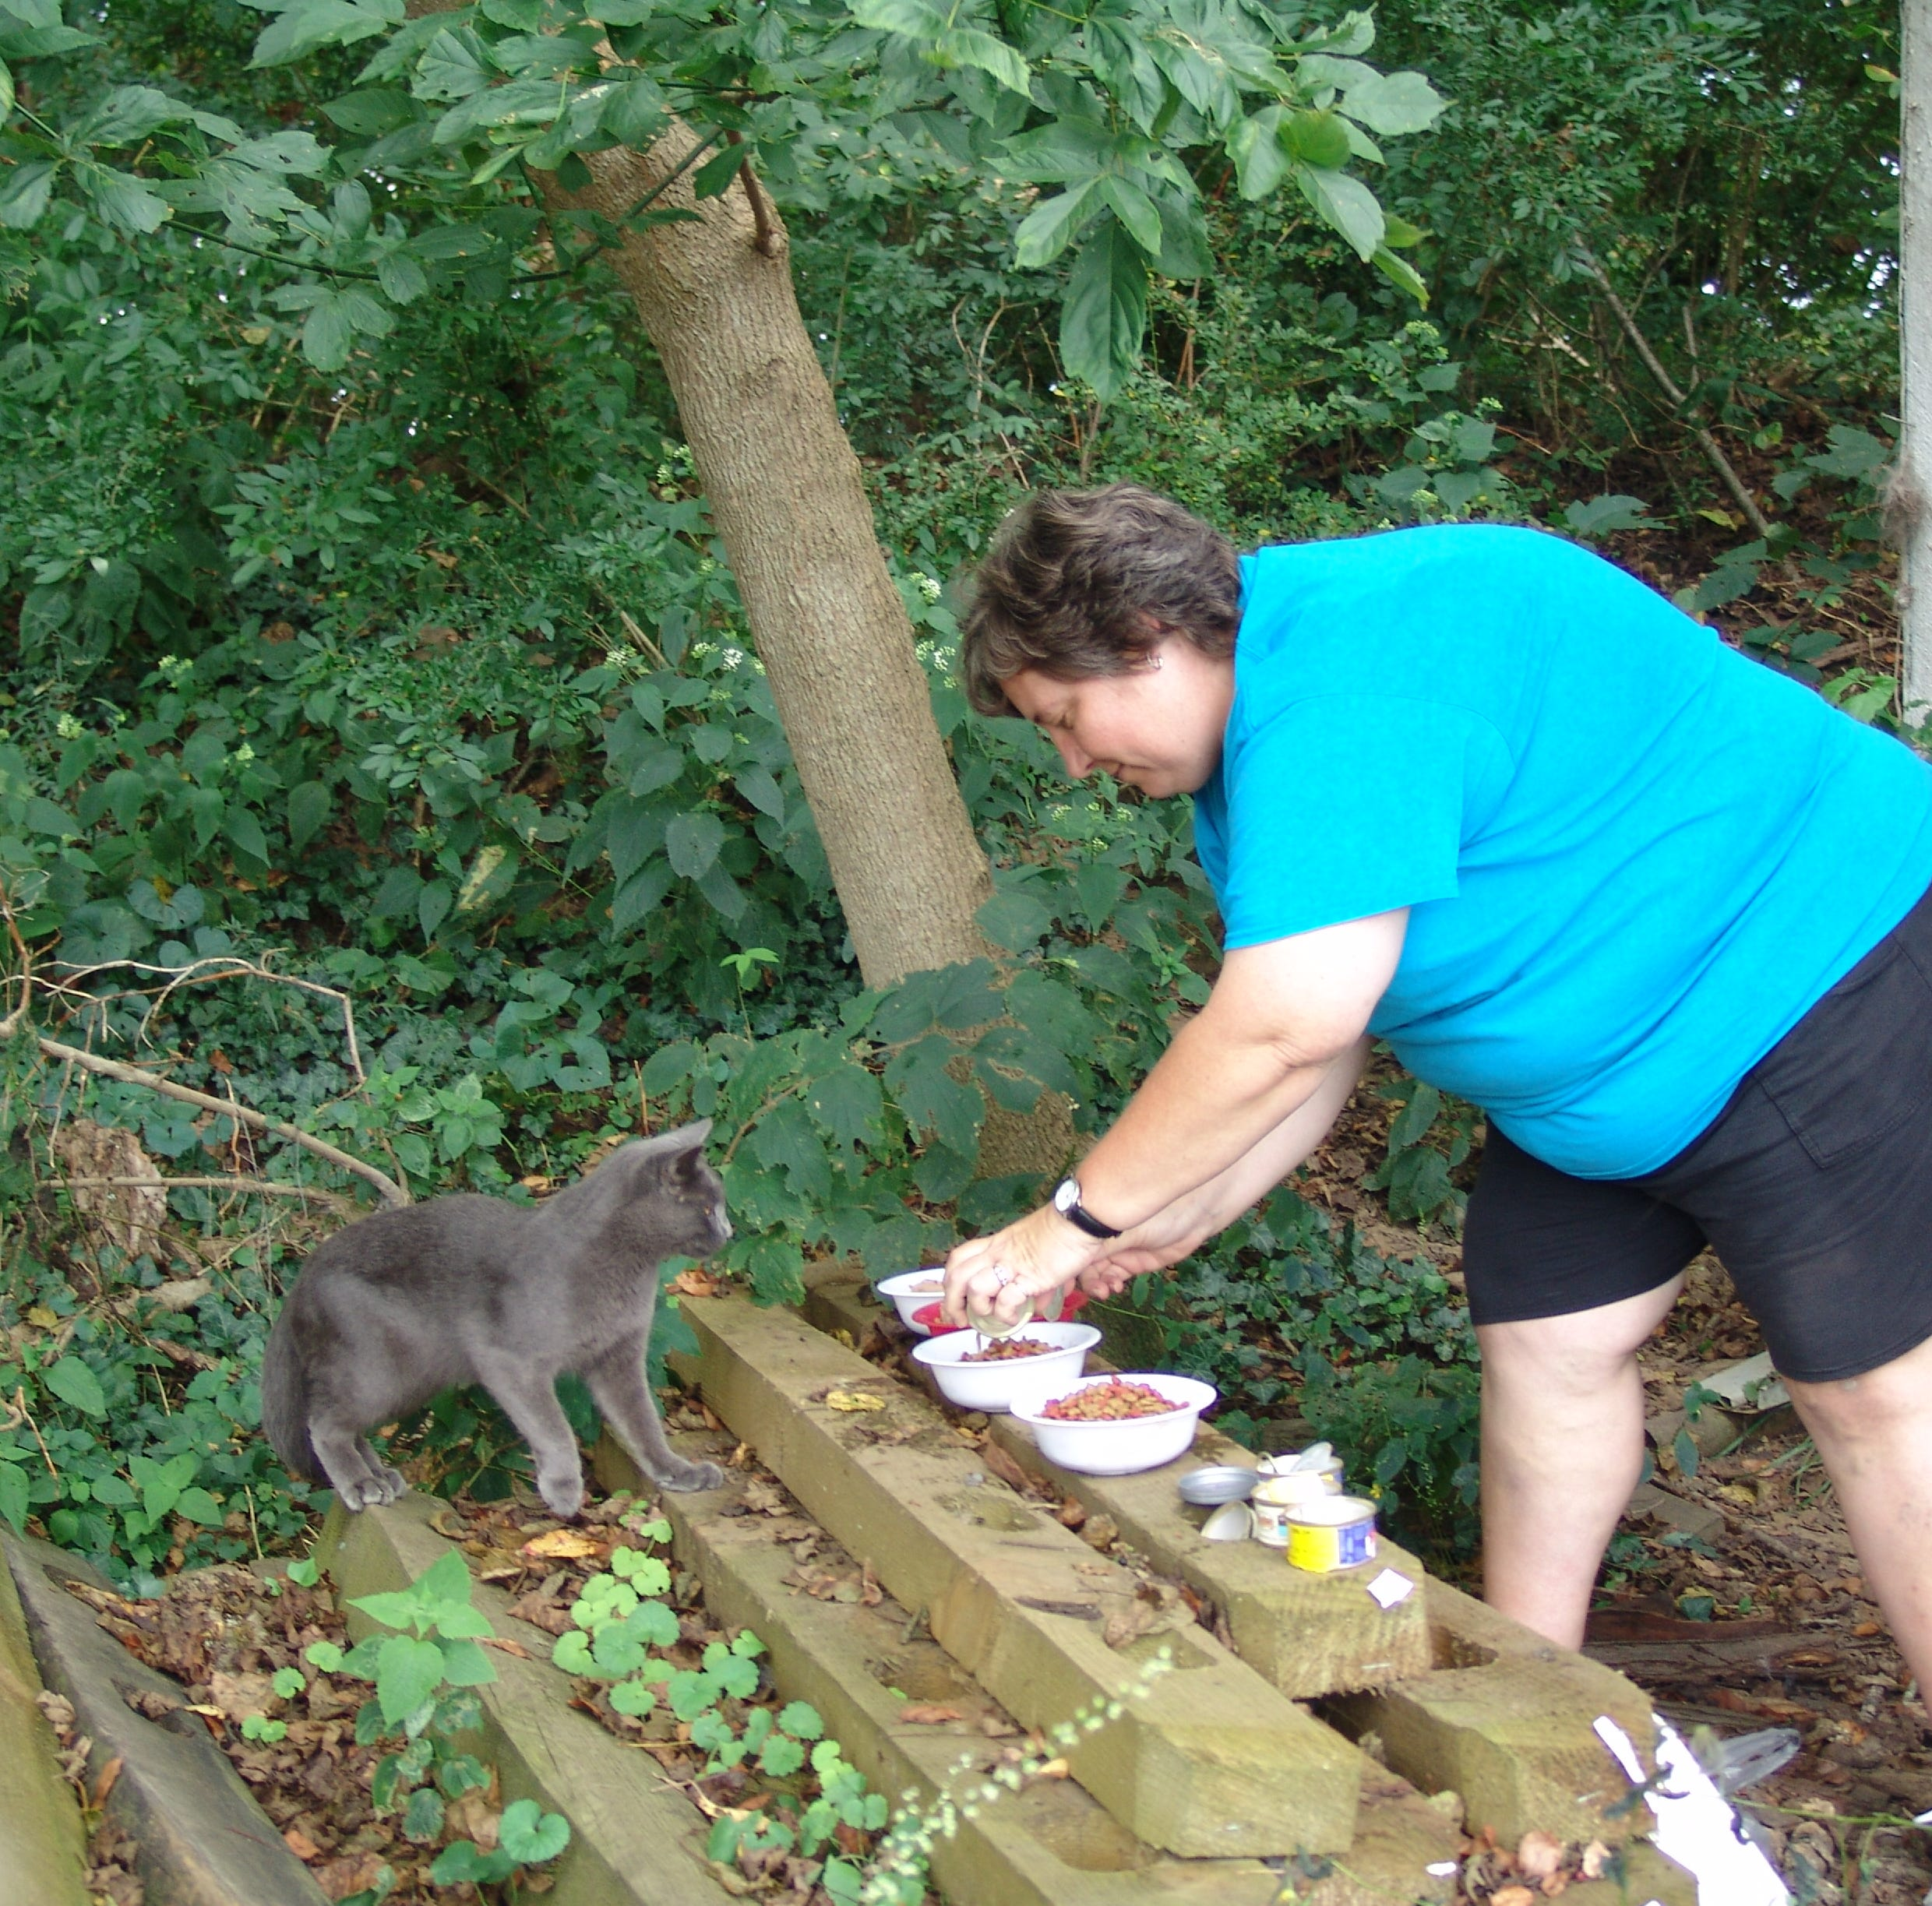 Humane solution for feral cats in Coshocton County